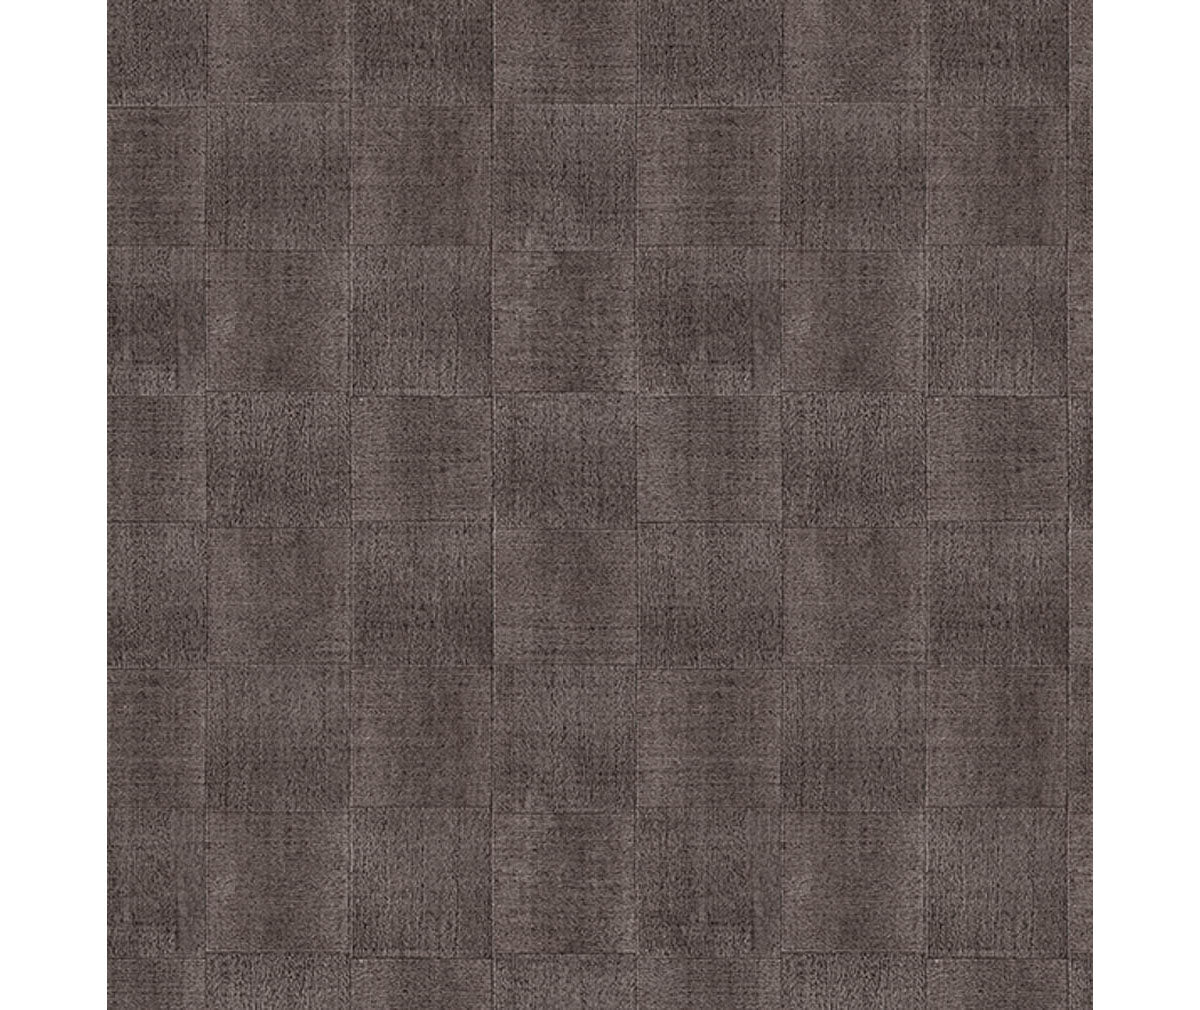 Odyssey Brown Wood Wallpaper available at Barrydowne Paint